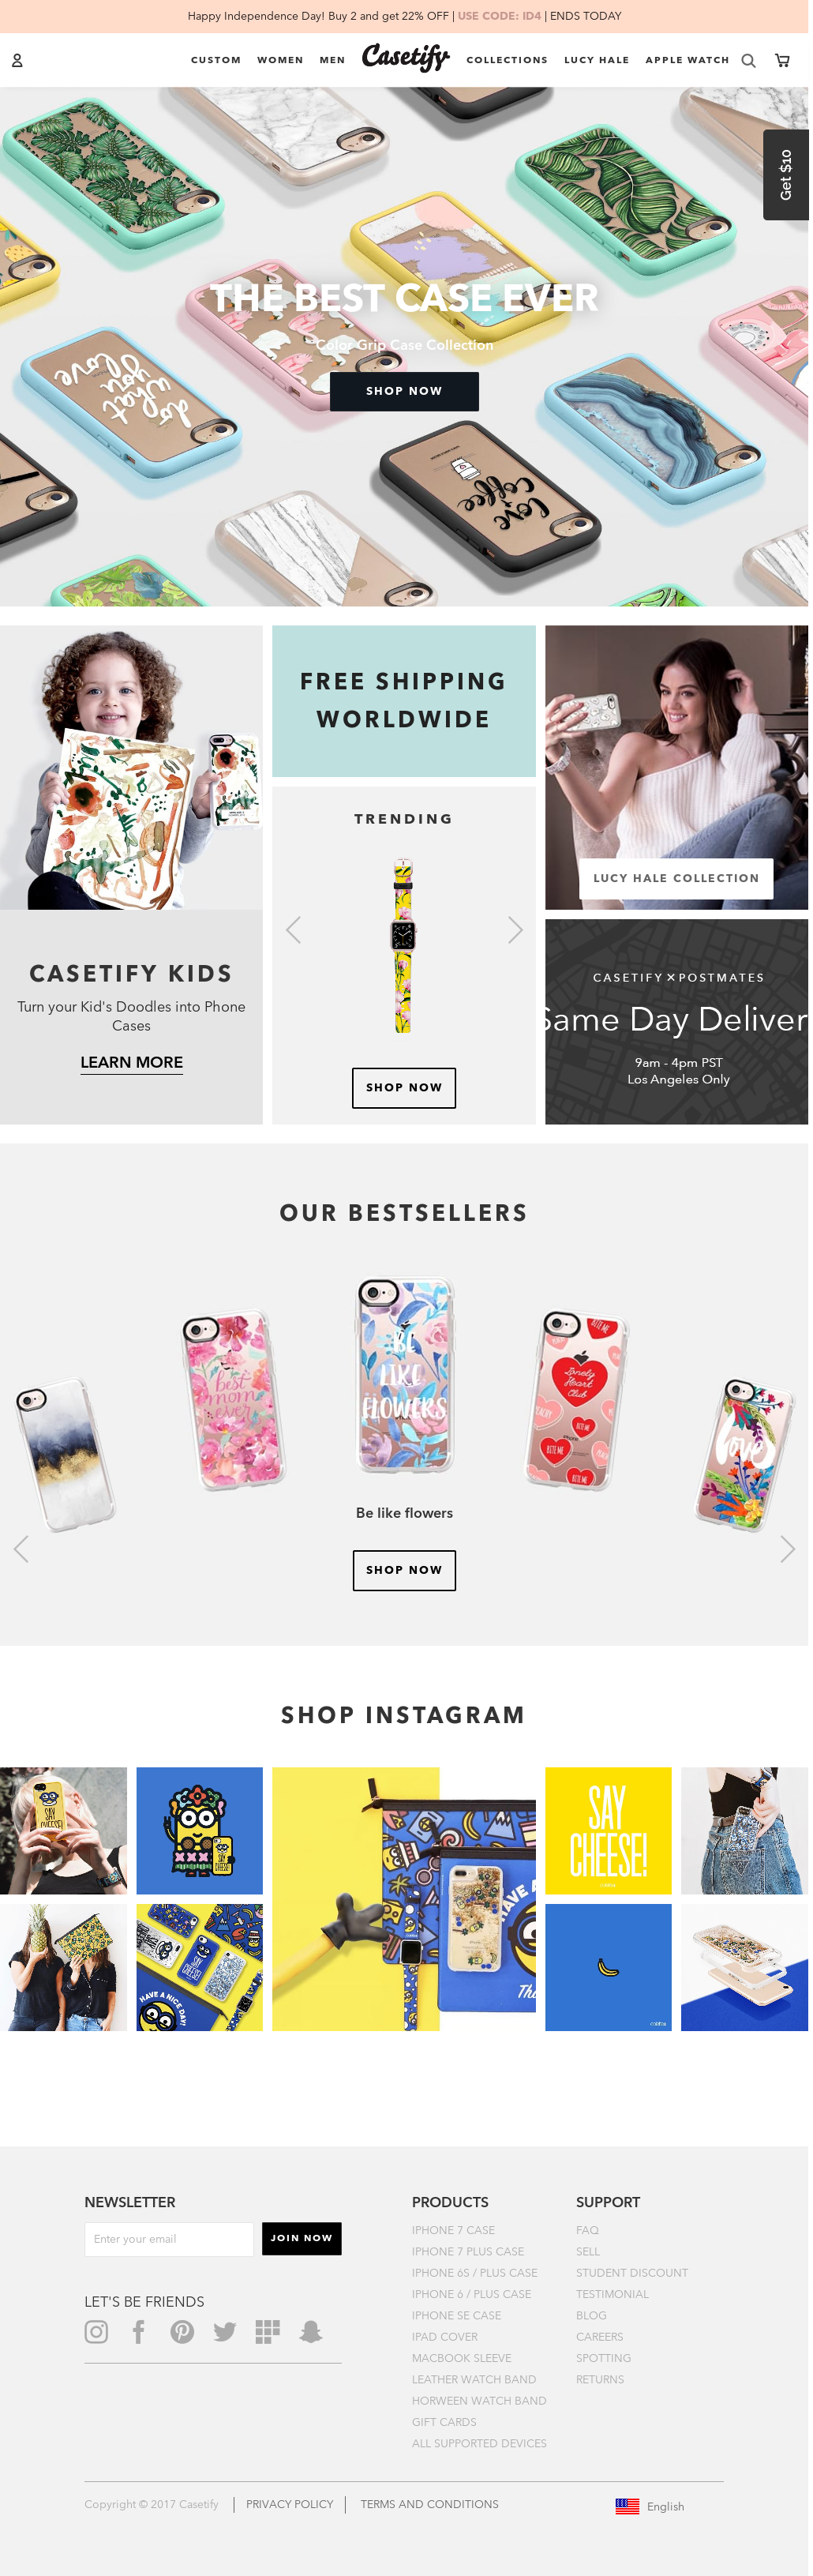 Owler Reports - Press Release: Casetify : CASETiFY Upgrades